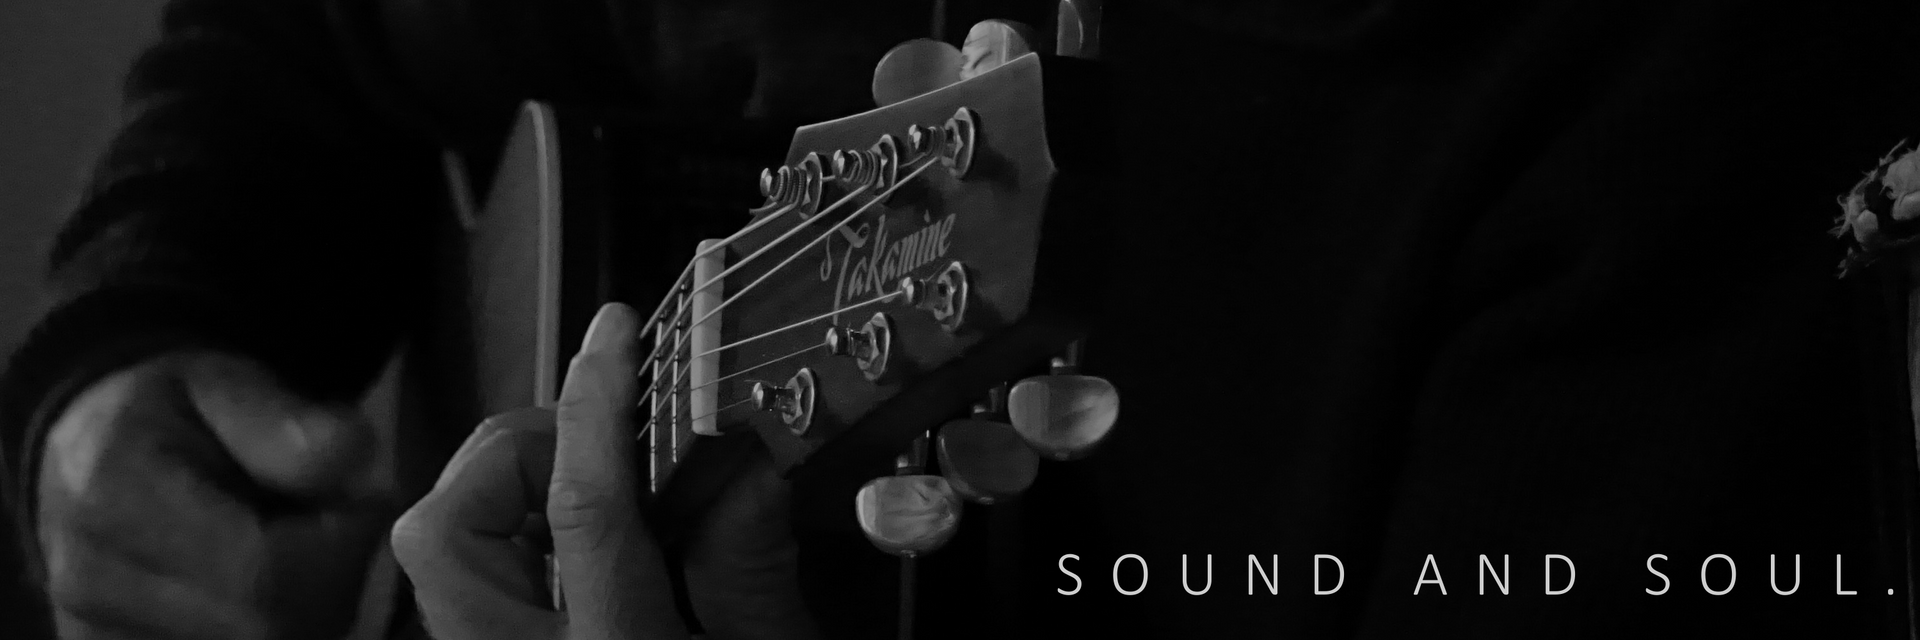 sound and soul.png